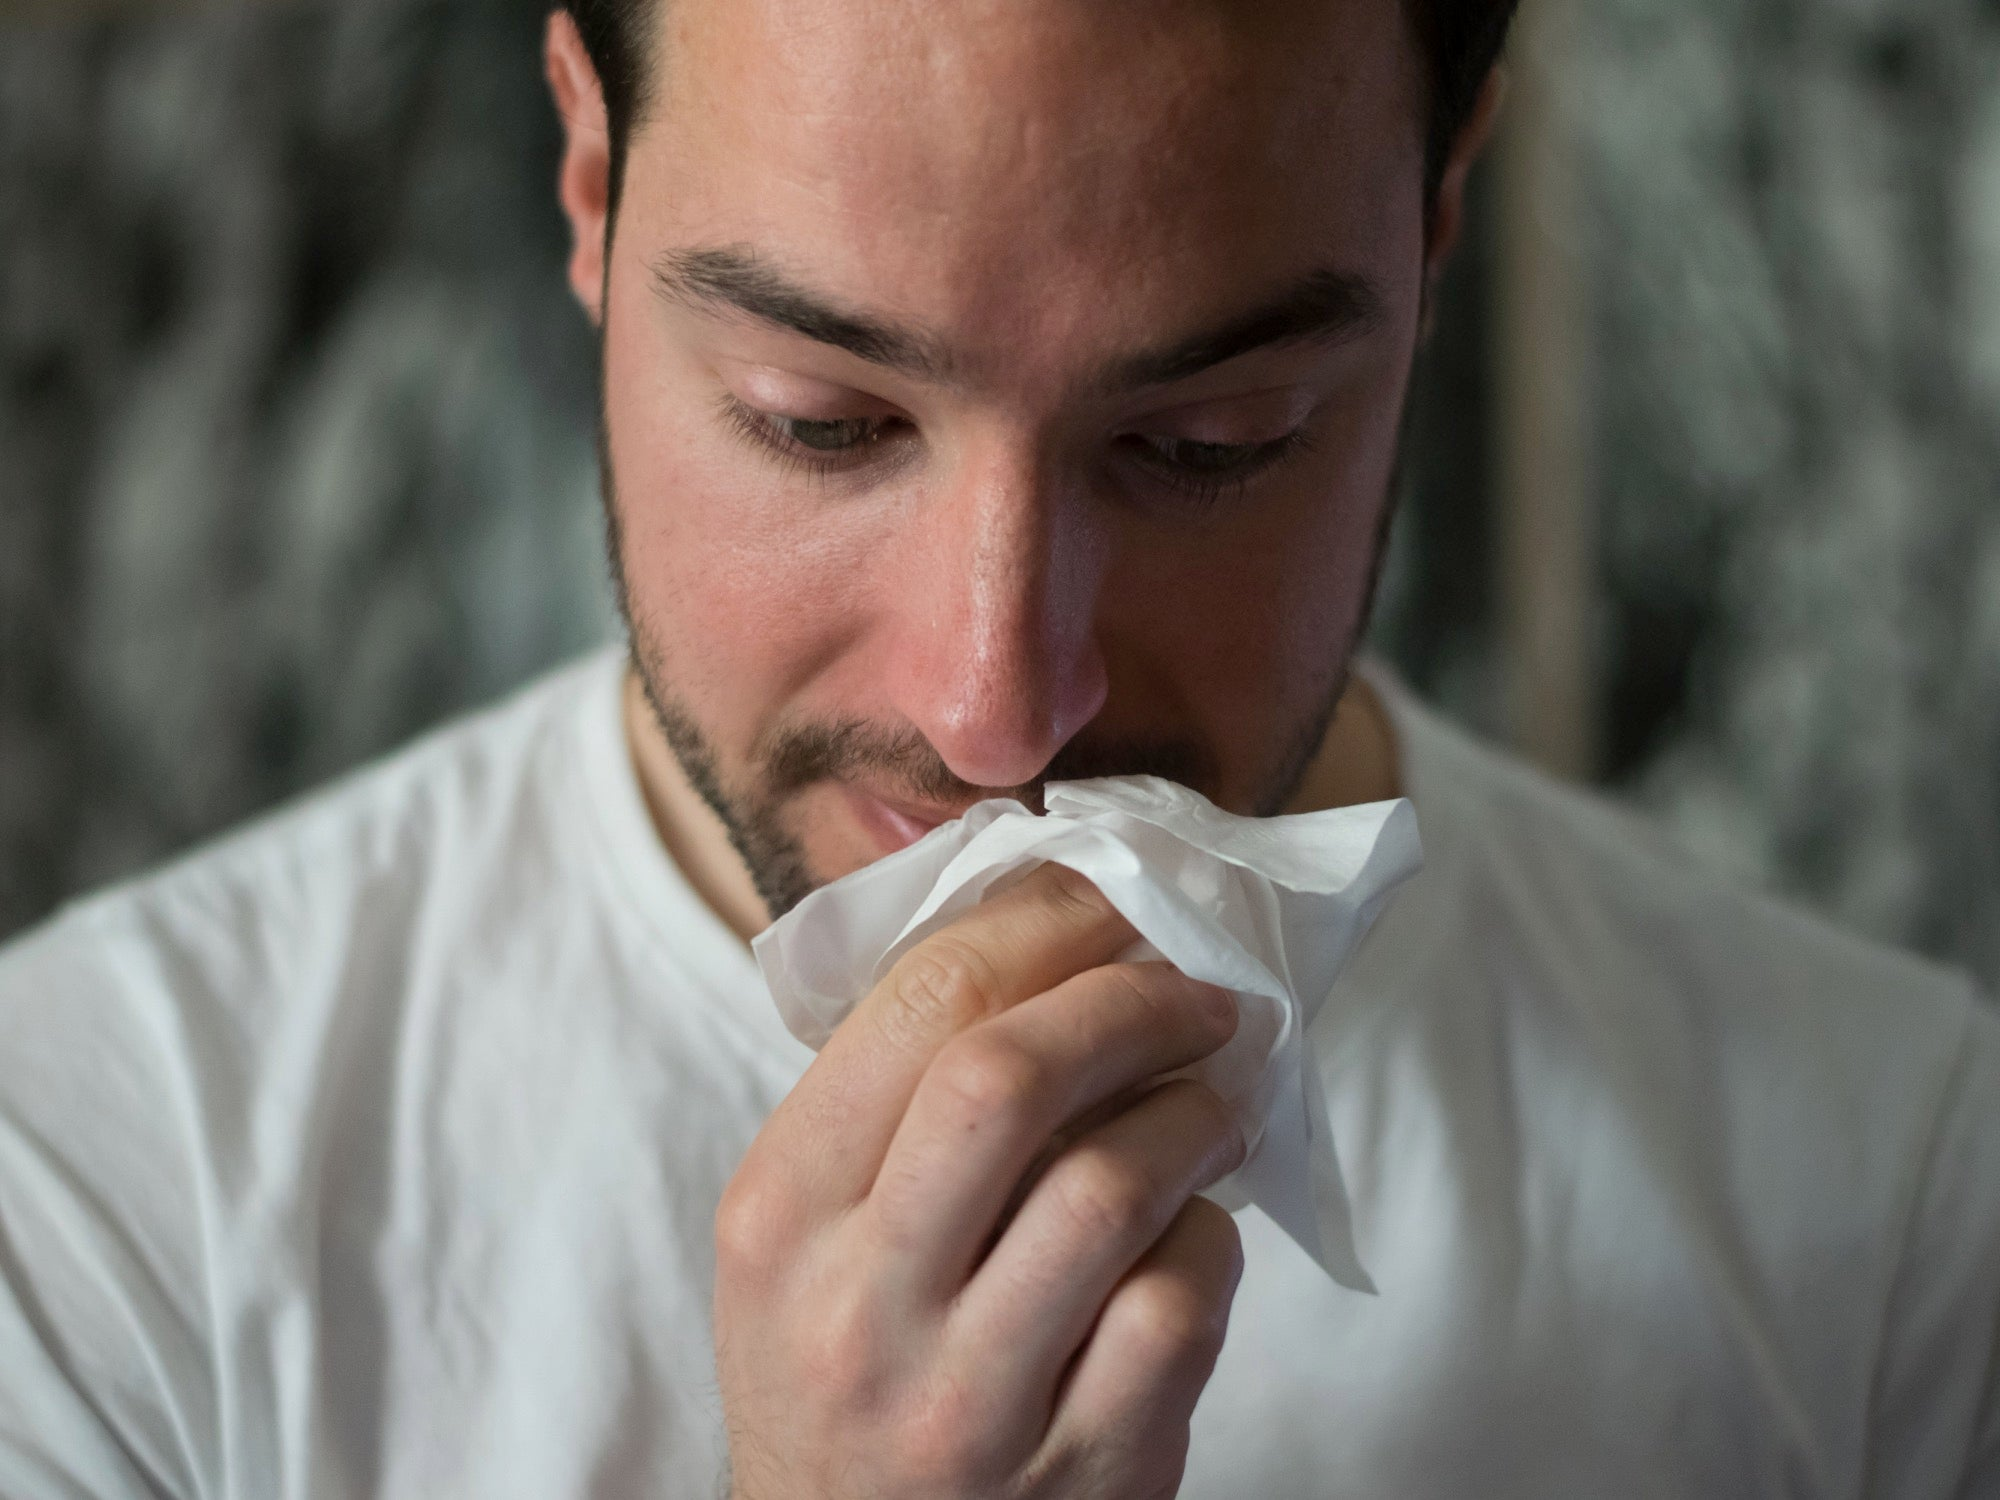 man wiping his nose with a tissue